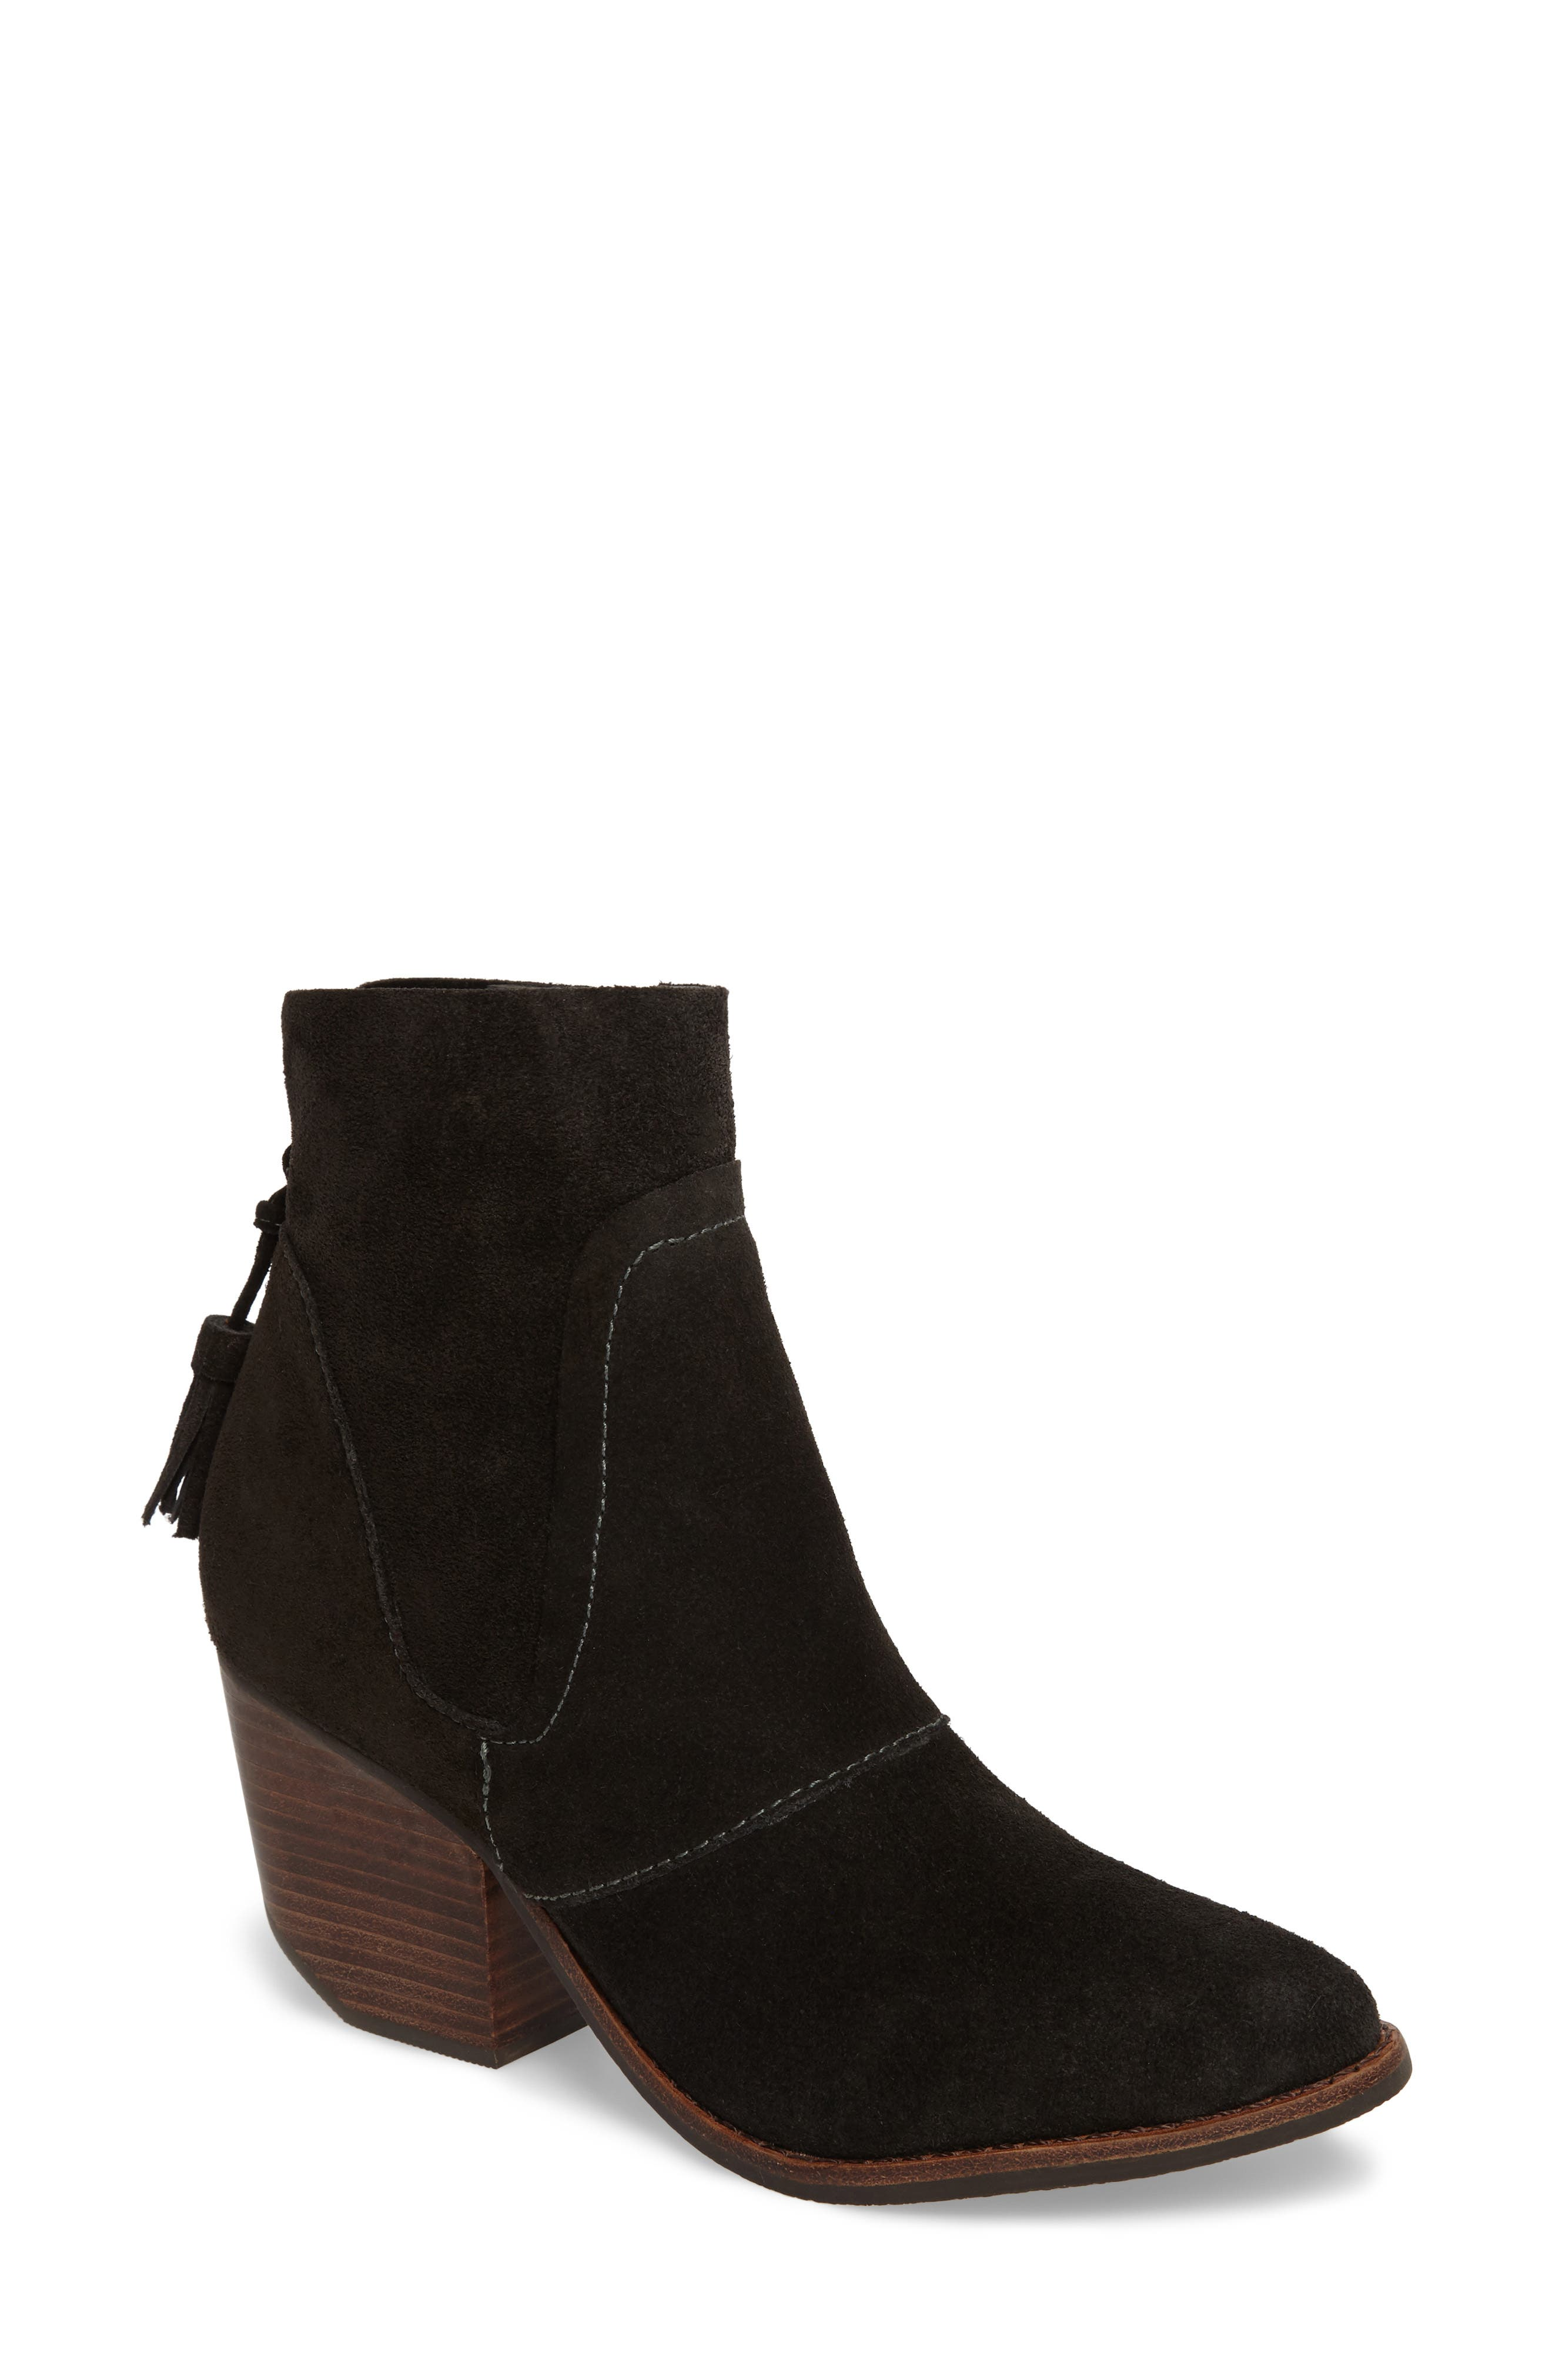 Laney Notched Heel Bootie,                             Main thumbnail 4, color,